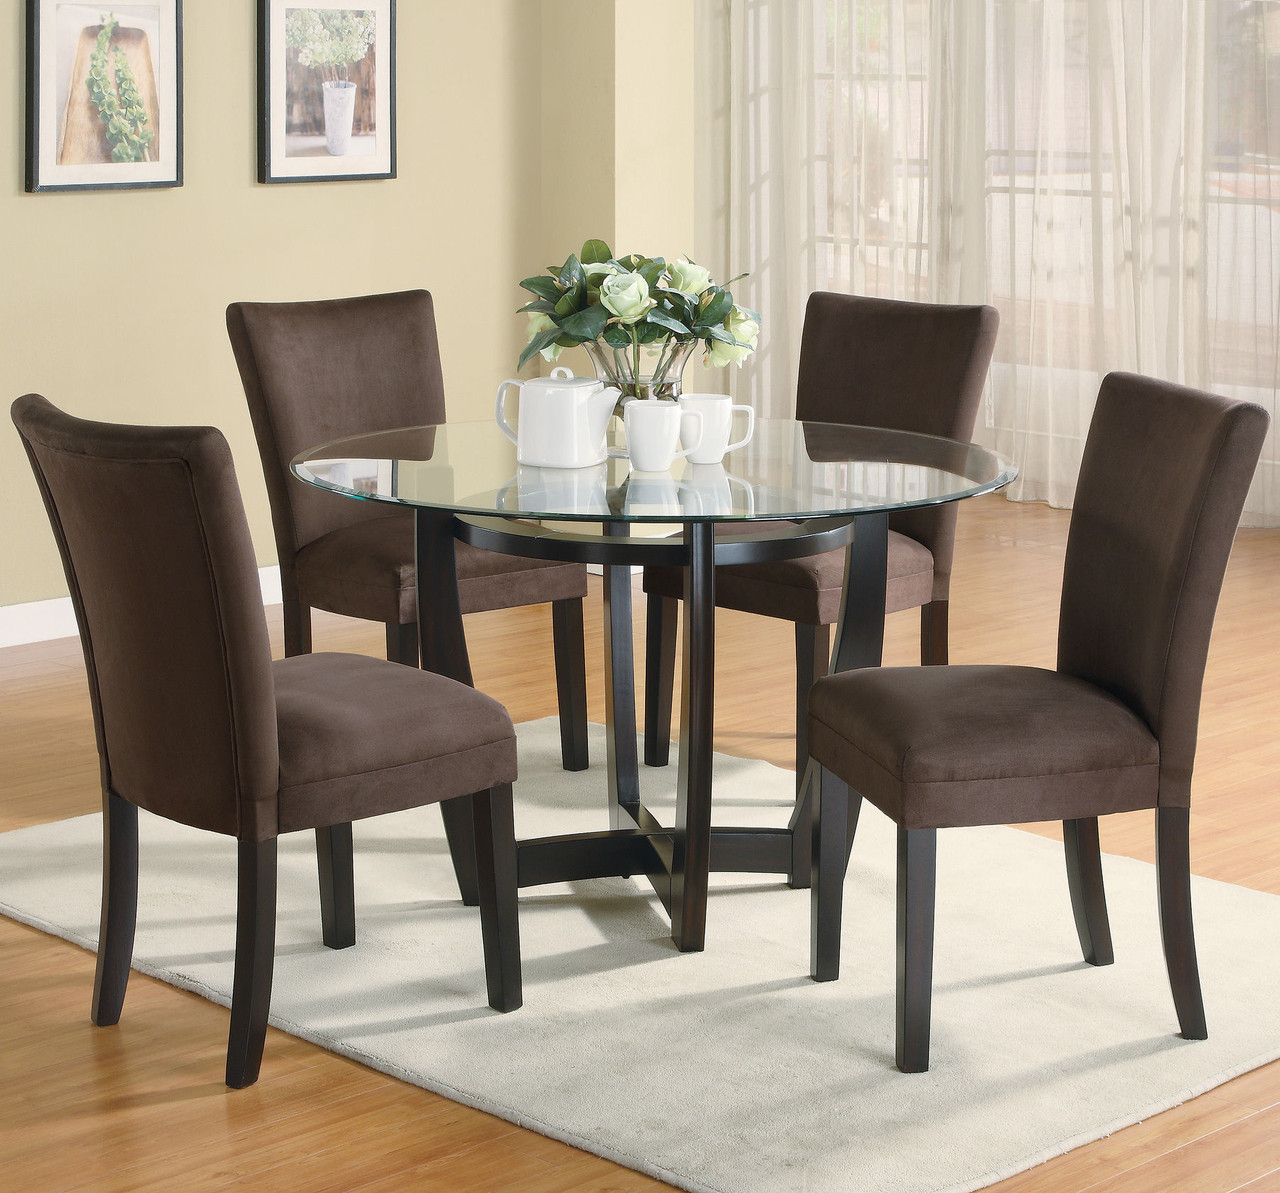 Continental Chocolate 5 Piece Round Glass Dining Set